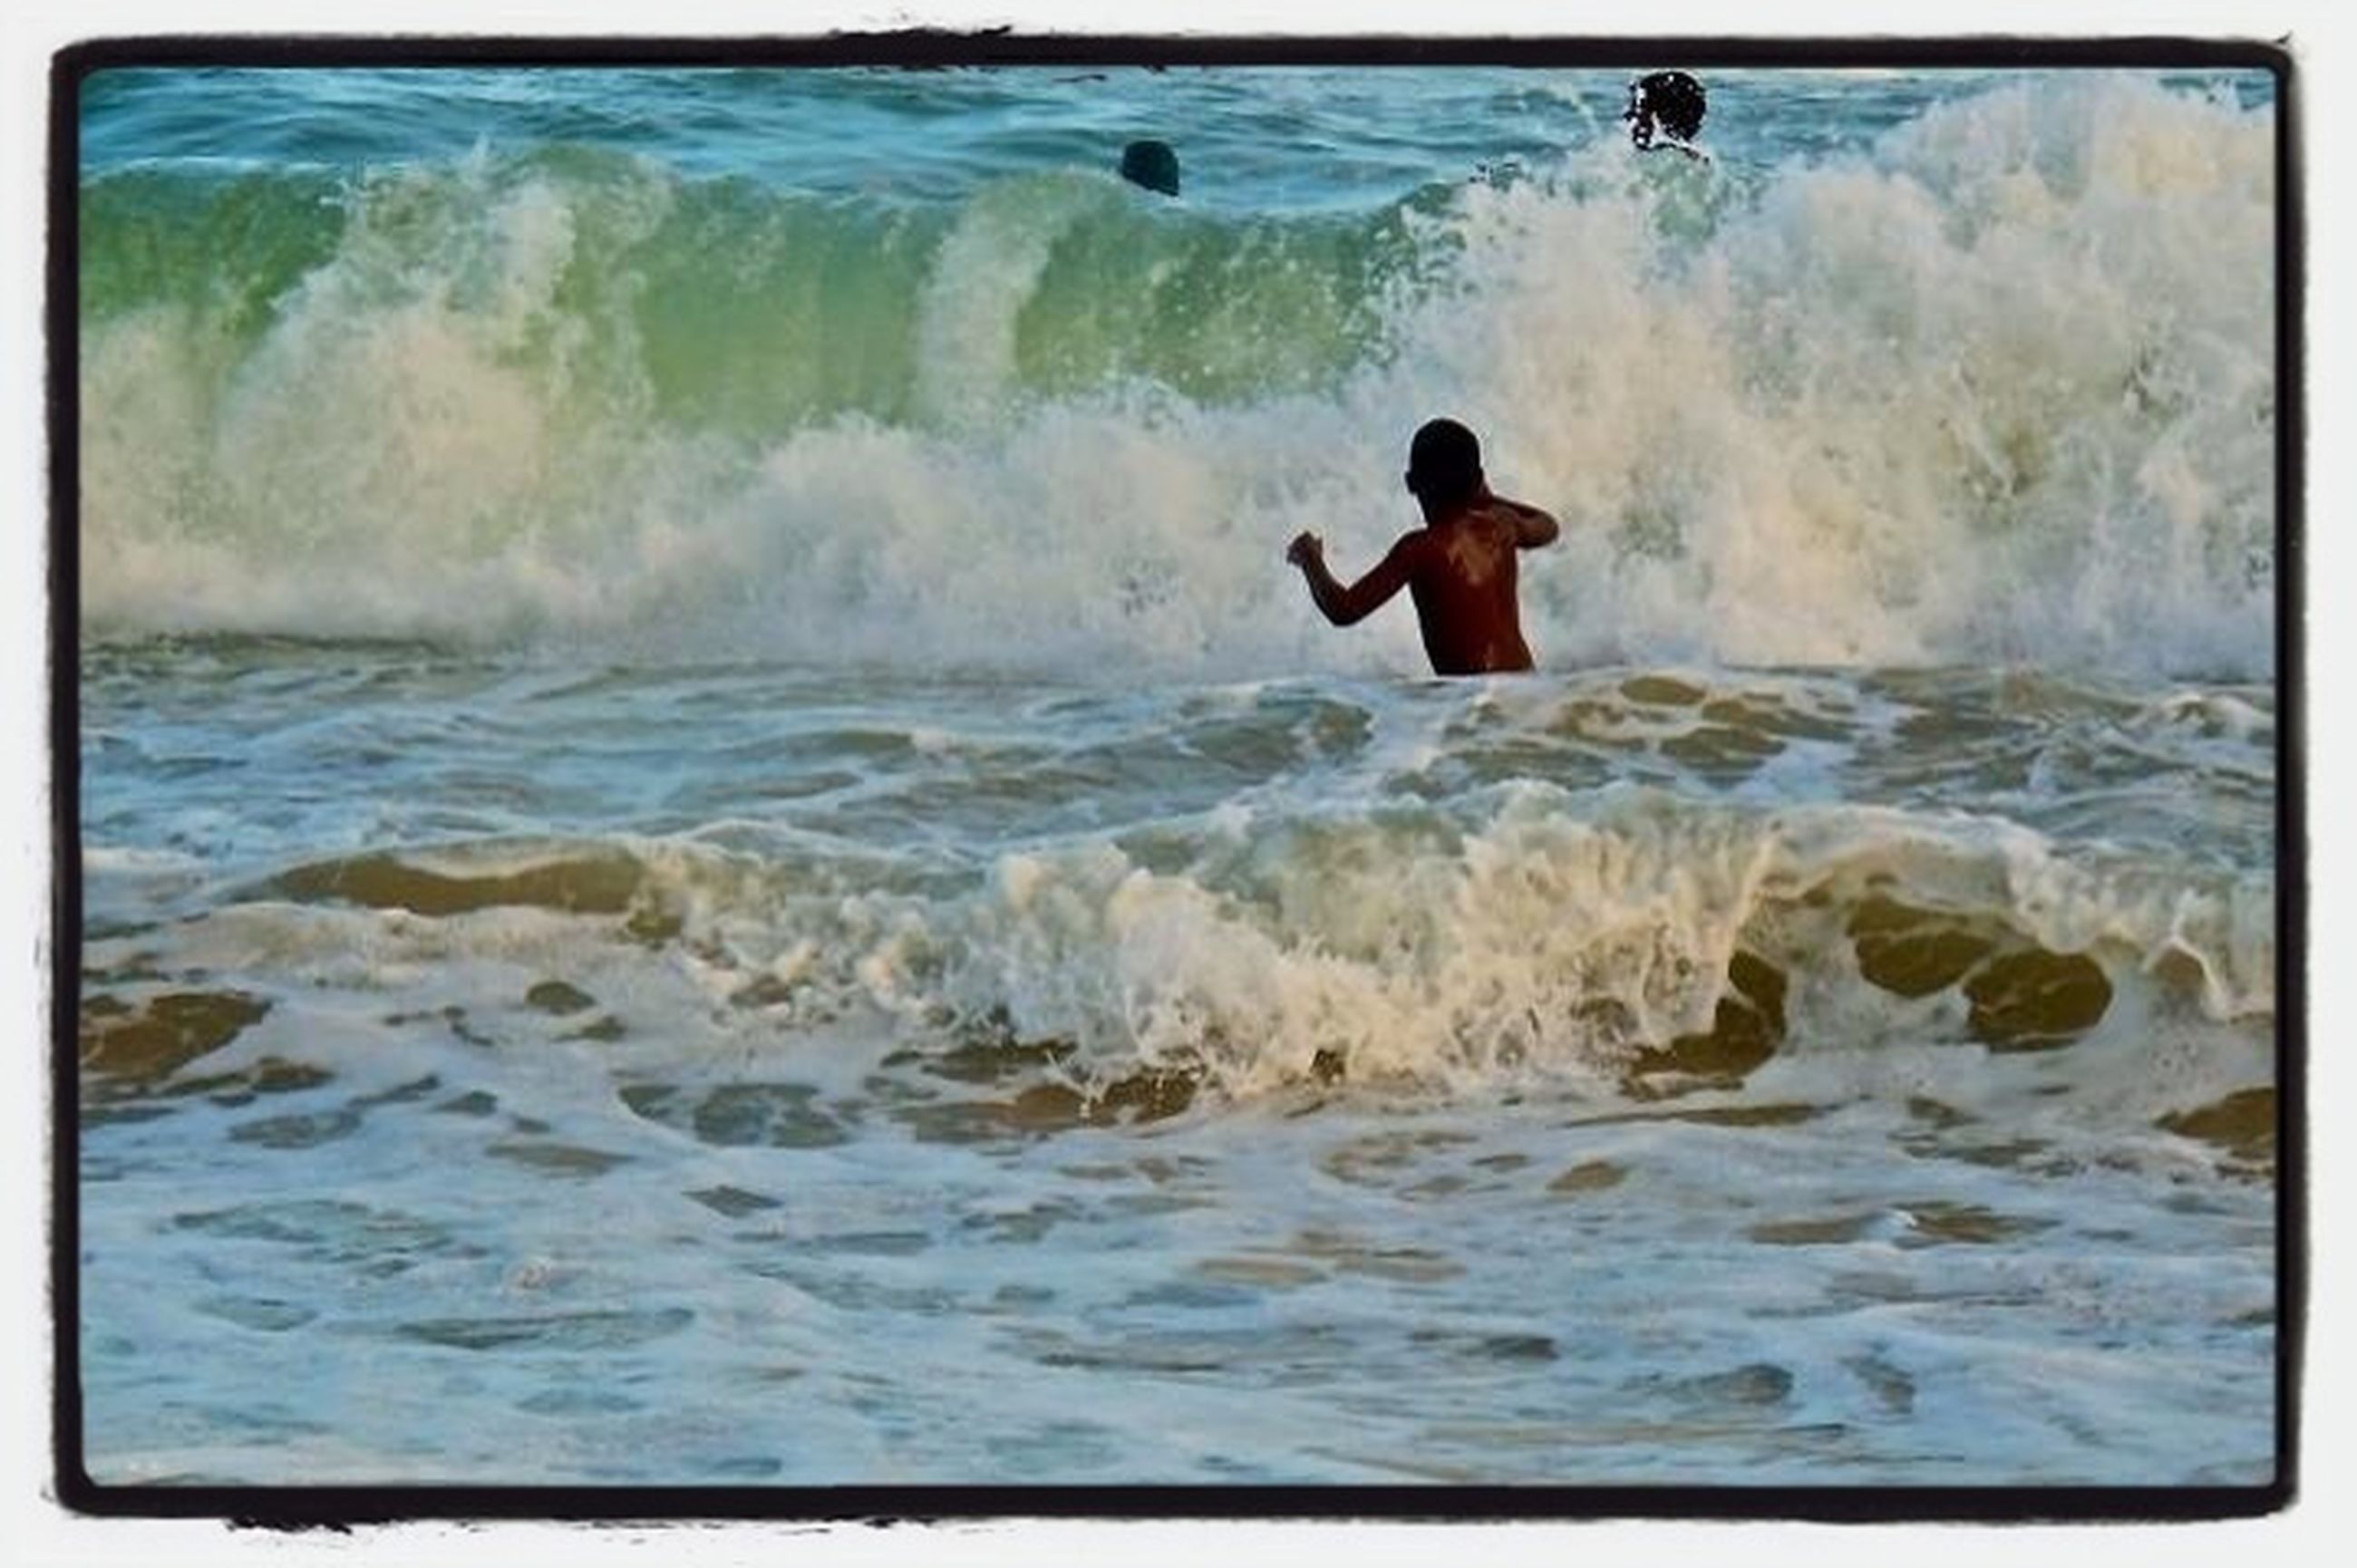 water, lifestyles, leisure activity, sea, transfer print, waterfront, men, motion, wave, full length, auto post production filter, surf, vacations, standing, splashing, nature, rear view, enjoyment